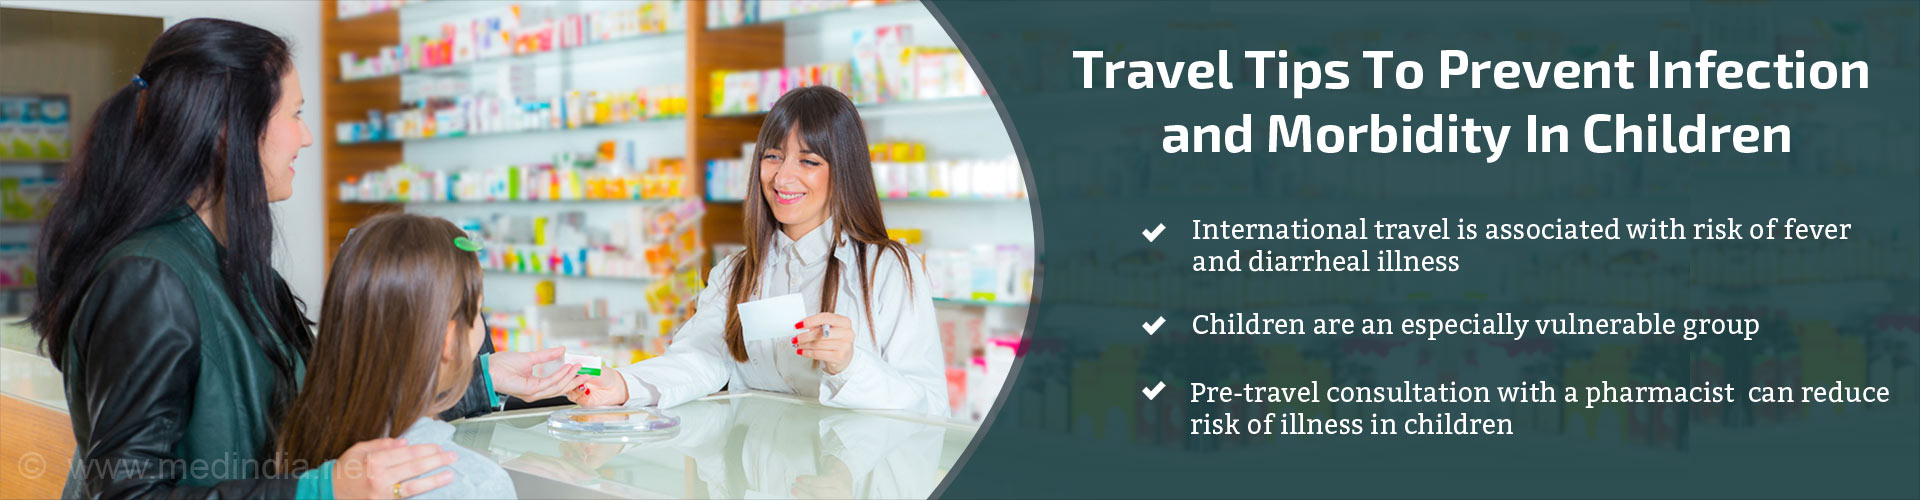 Travel Tips To Prevent Infection and Morbidity In Children